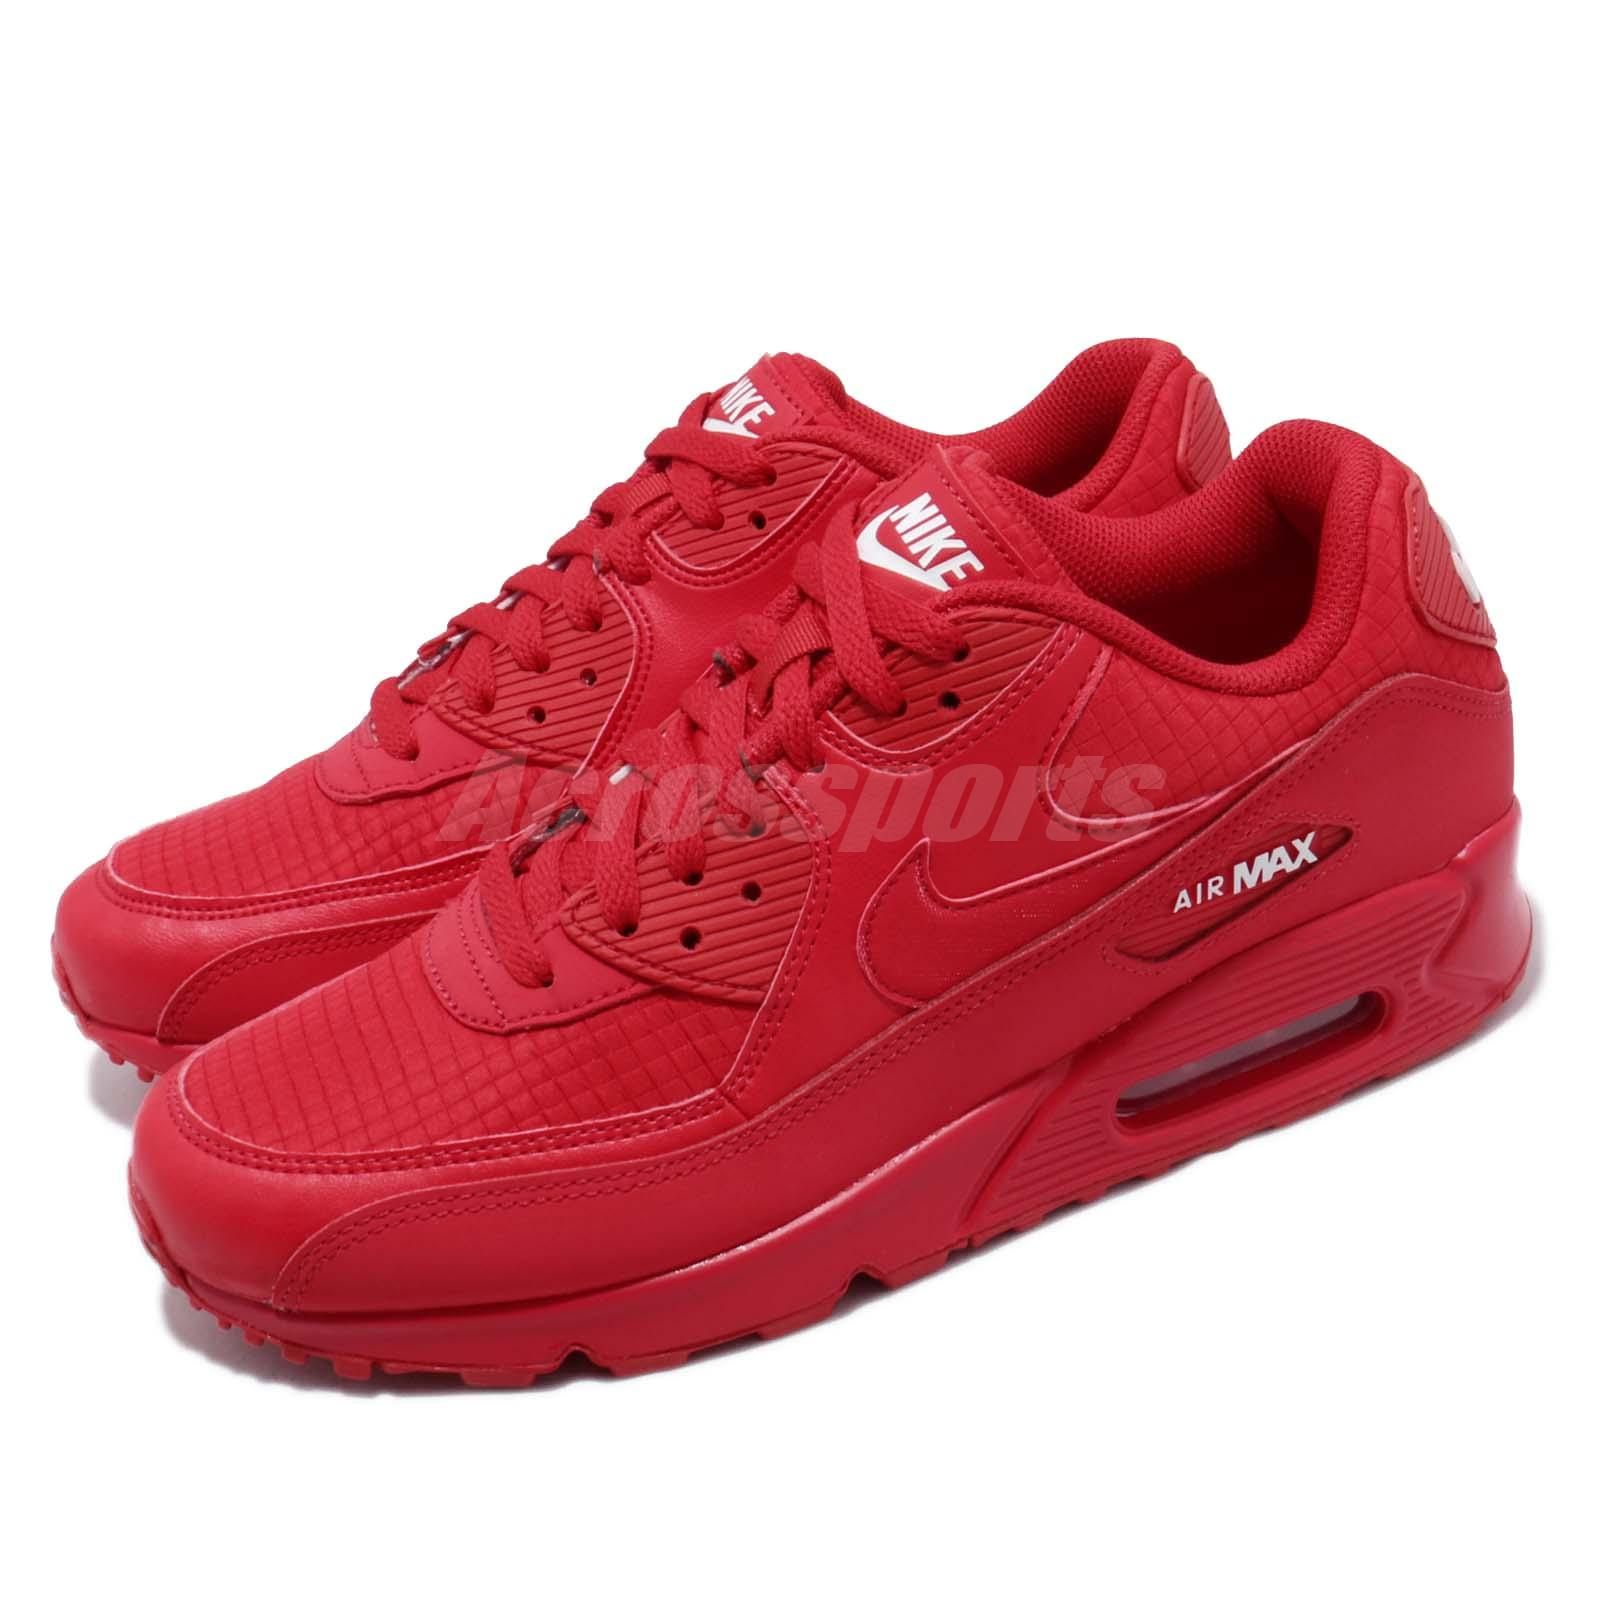 NIKE AIR MAX 90 PREMIUM Kie Ney AMAX 90 sneakers men 700,155 602 red [load planned Shinnyu load in reservation product 512 containing] [185]